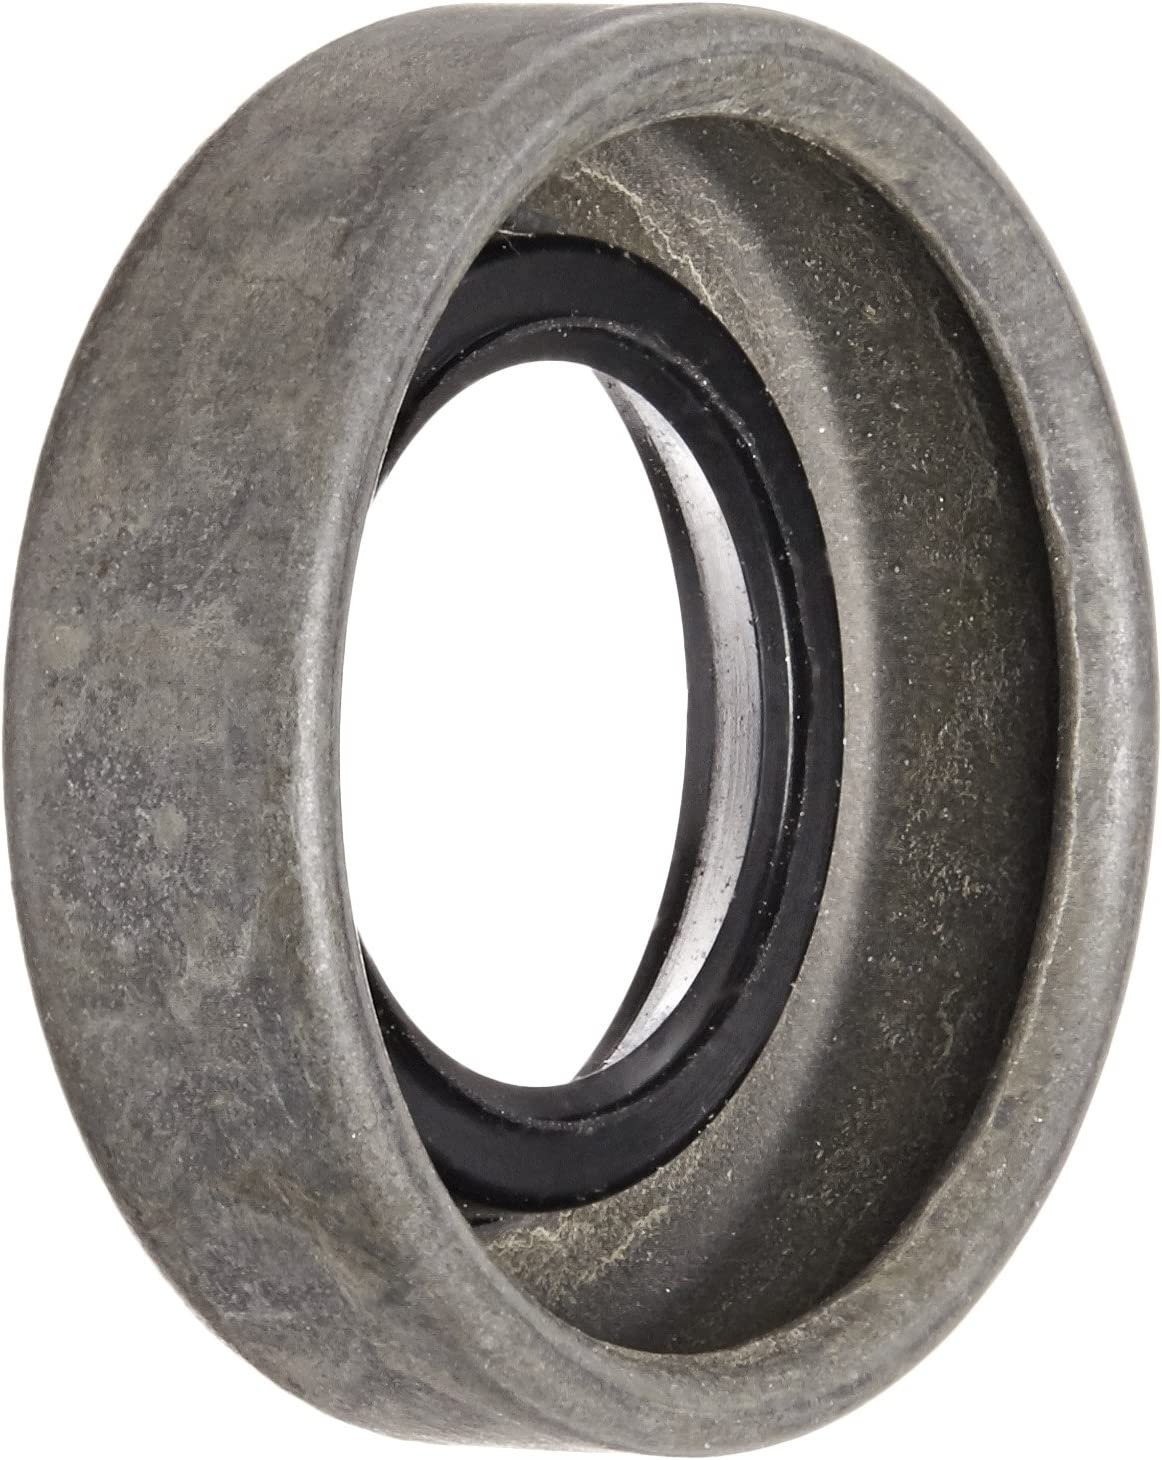 SKF Large special price !! online shopping 4938 LDS Small Bore Seal R Inch Style 0. HM14 Lip Code